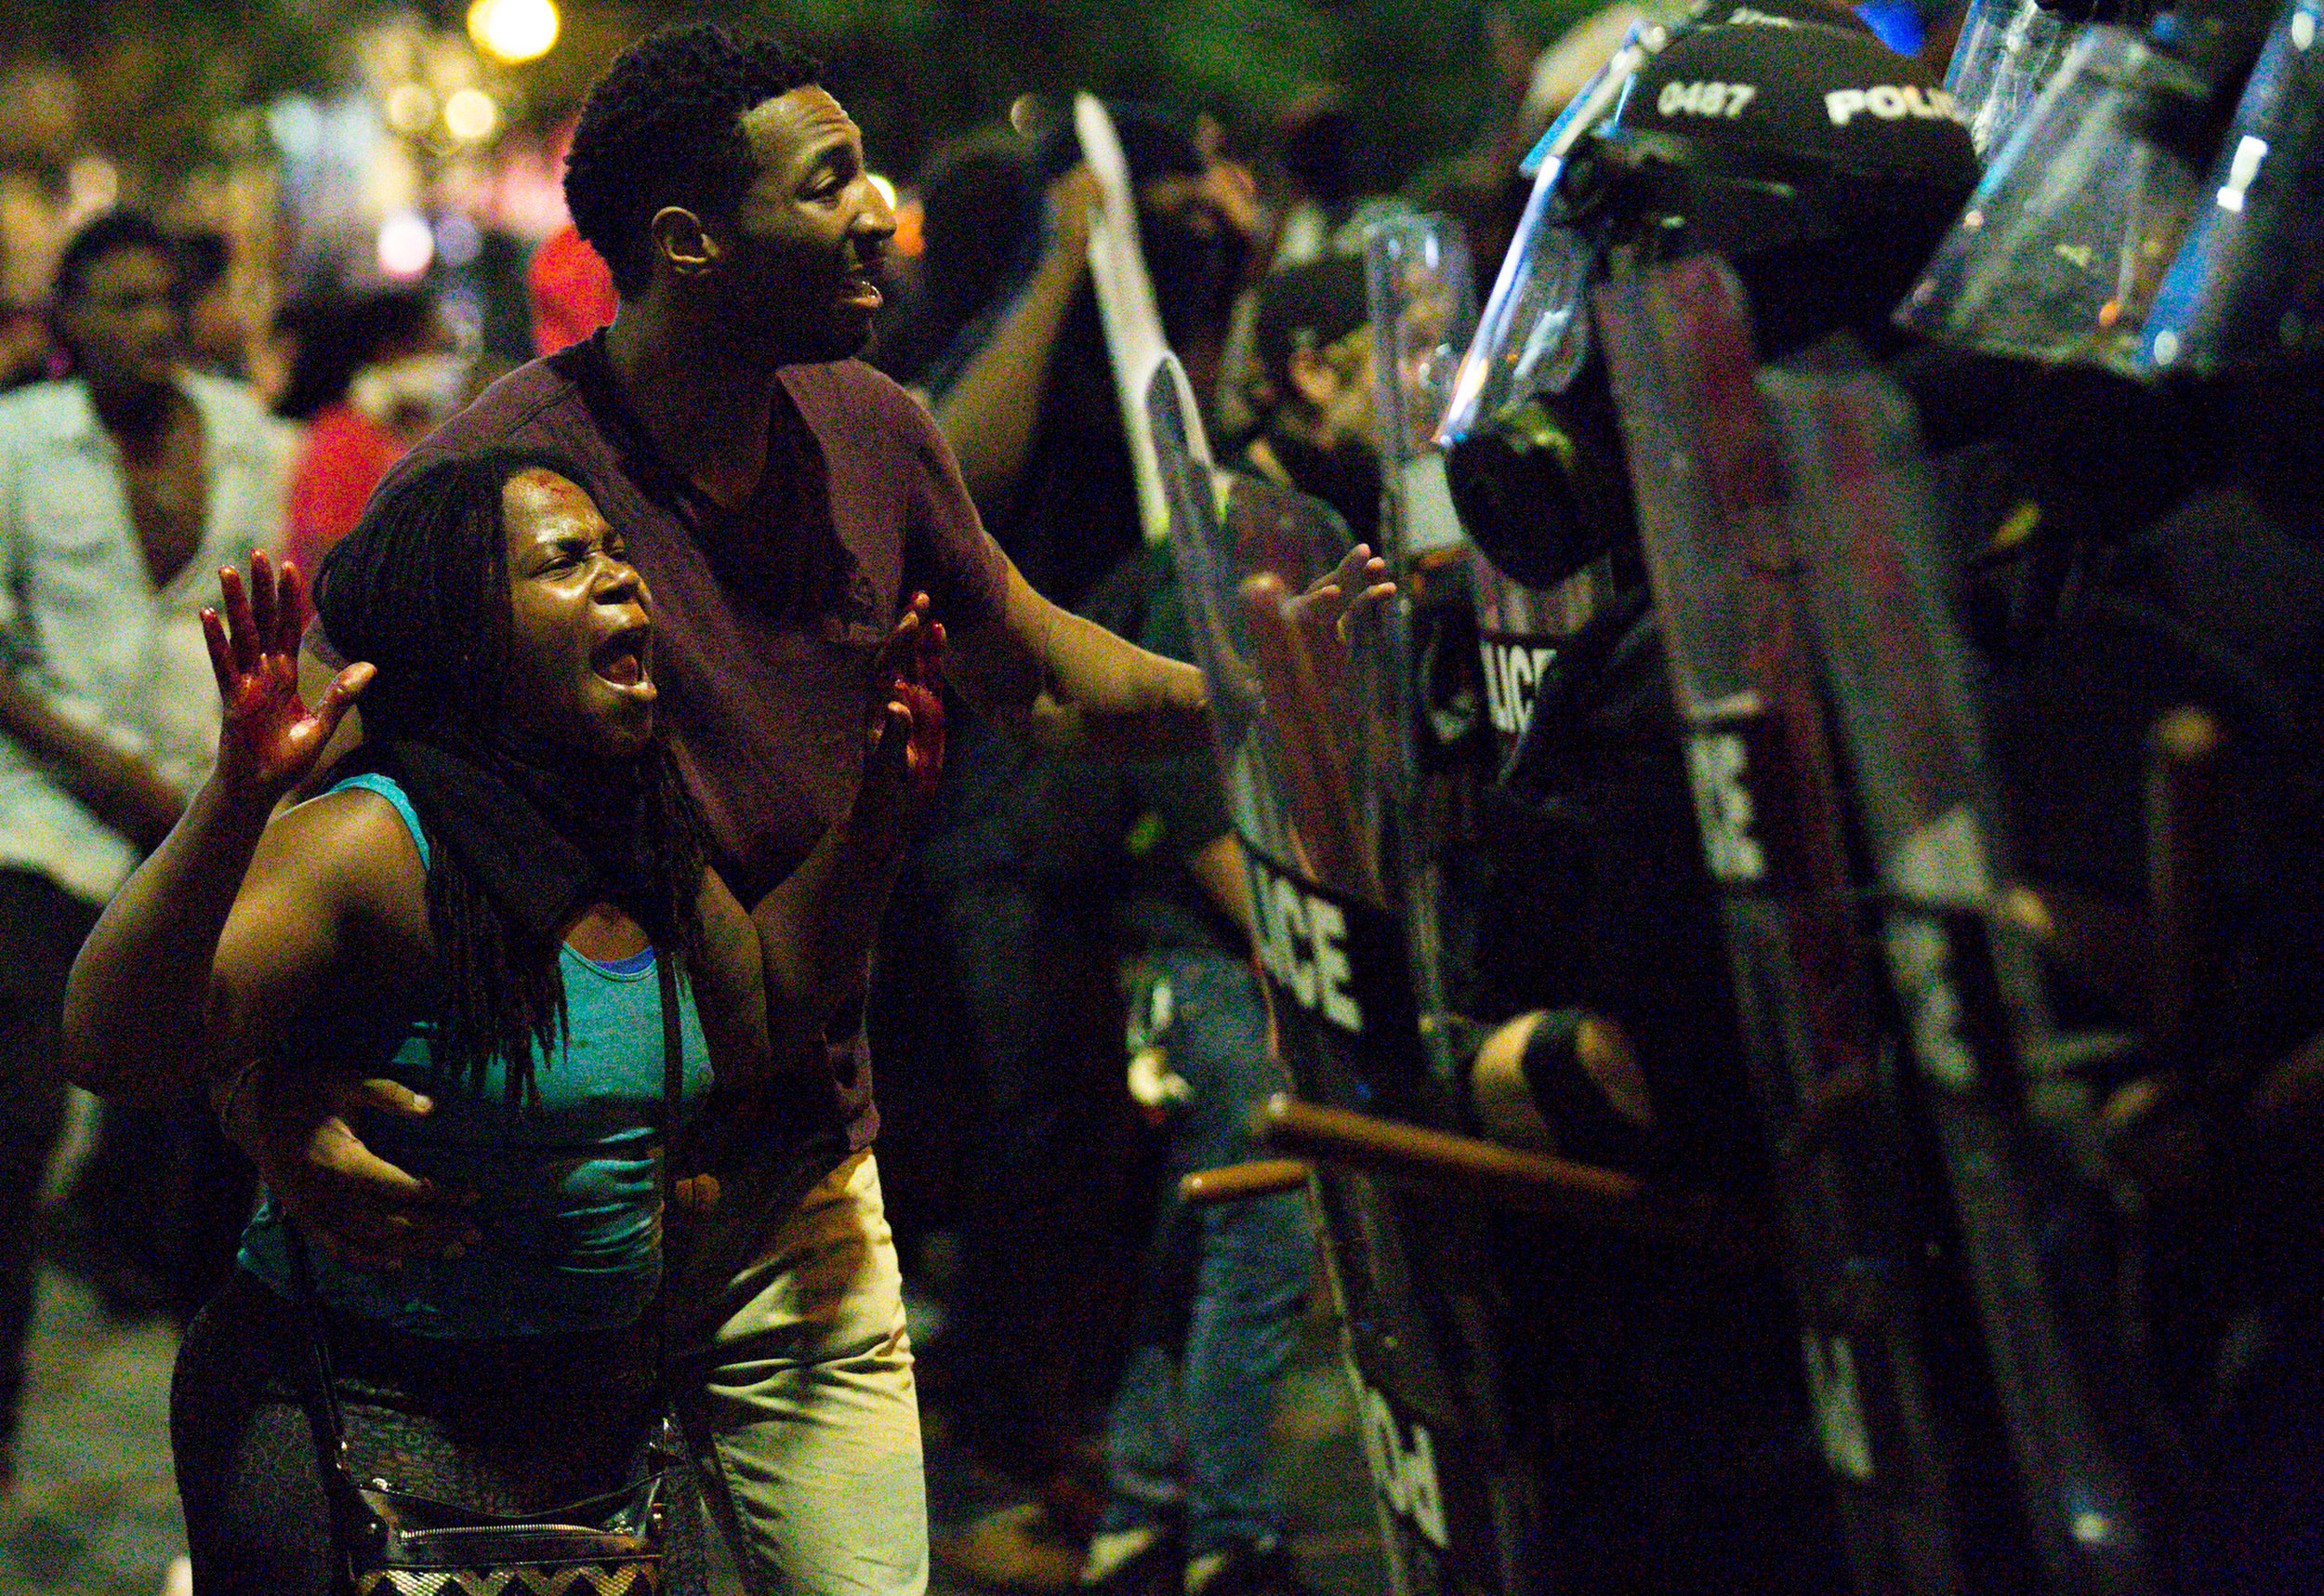 A protester with blood on her hands shouts at riot police officers immediately after a shooting in the crowd left a protester critically injured, Sept. 21, 2016, at the intersection of North College and East Trade streets in downtown Charlotte, N.C. Justin Carr, 26, who was allegedly shot by another protester, Rayquan Borum, 21, later died from his injuries.